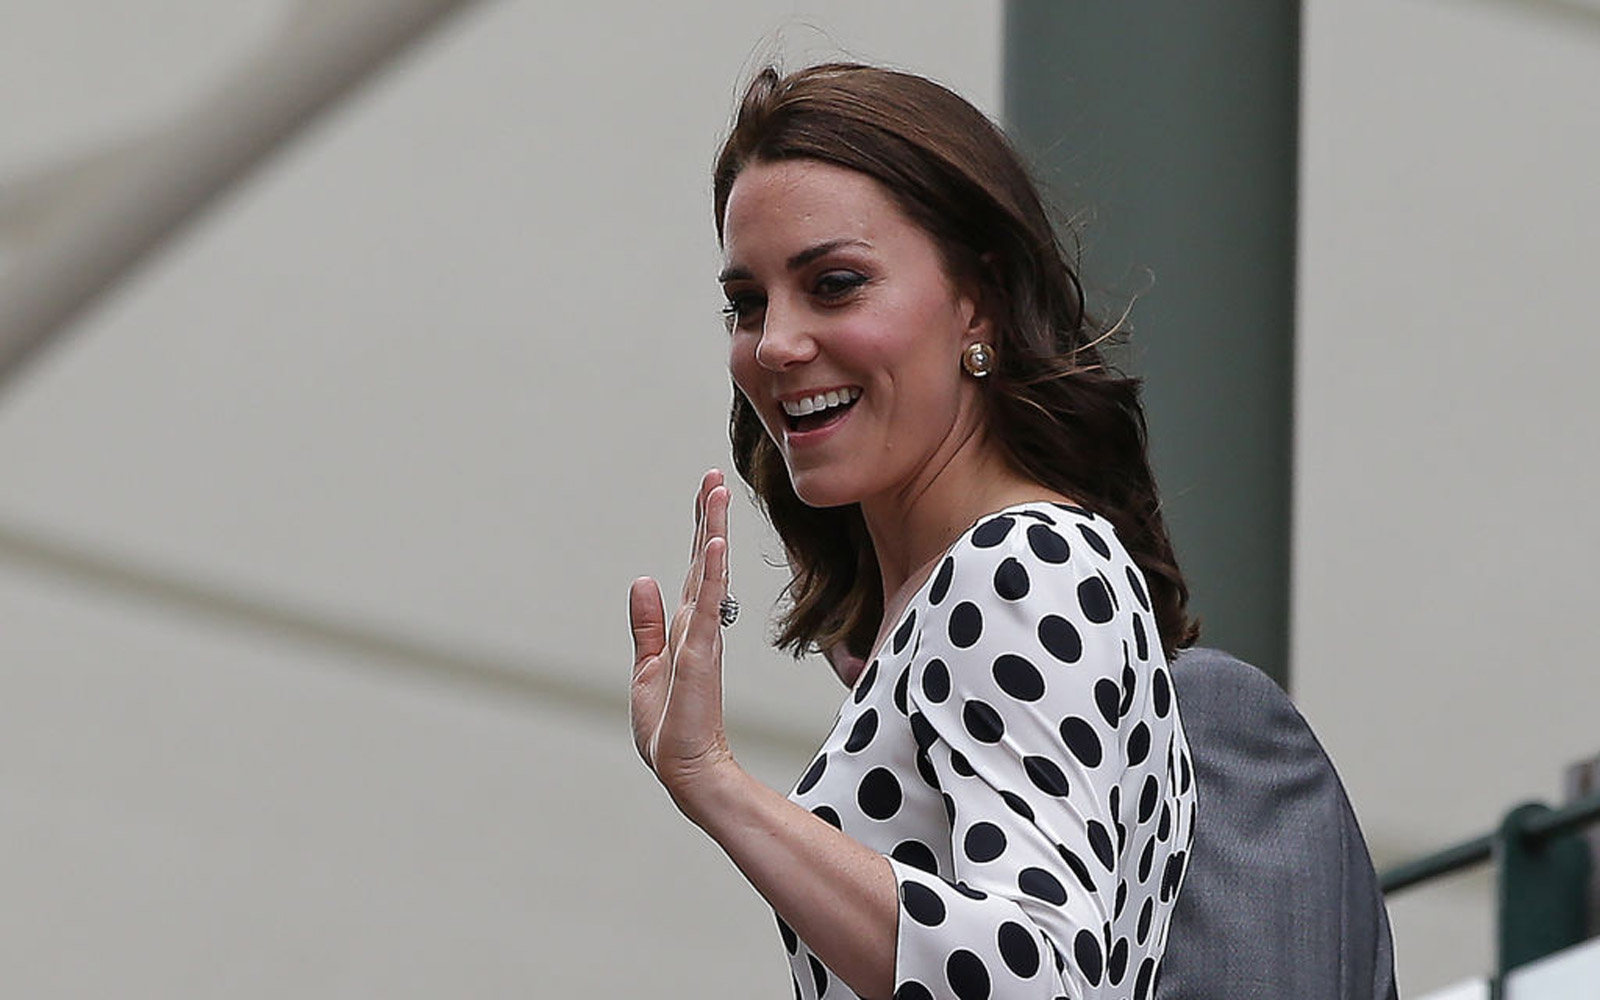 Britain's Catherine, Duchess of Cambridge, waves as she arrives at The All England Lawn Tennis Club in Wimbledon, southwest London, on July 3, 2017 on the first day of the 2017 Wimbledon Championships. / AFP PHOTO / Daniel LEAL-OLIVAS / RESTRICTED TO EDIT